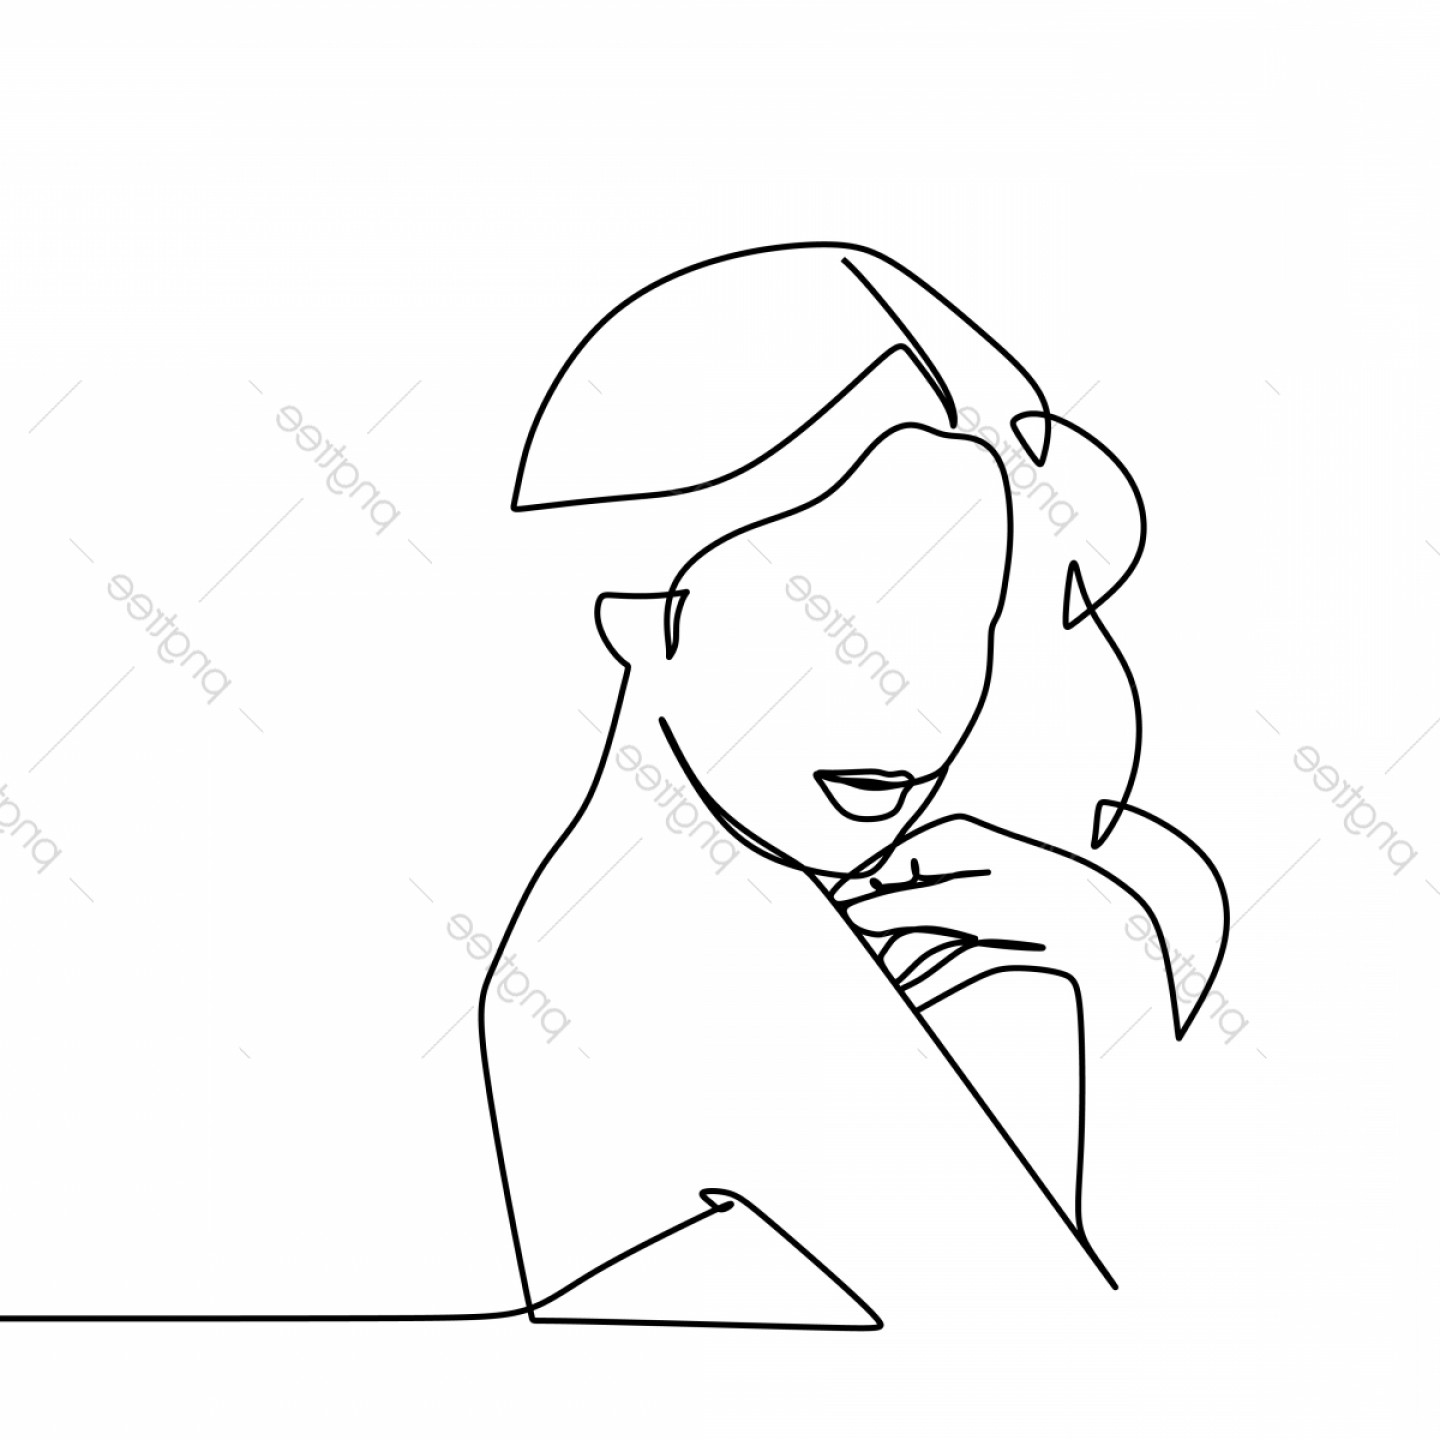 Girl Face Vector Art Black And White: Beauty Face Girl Vector Illustration Using One Continuous Line Art Drawing Isolated On White Background